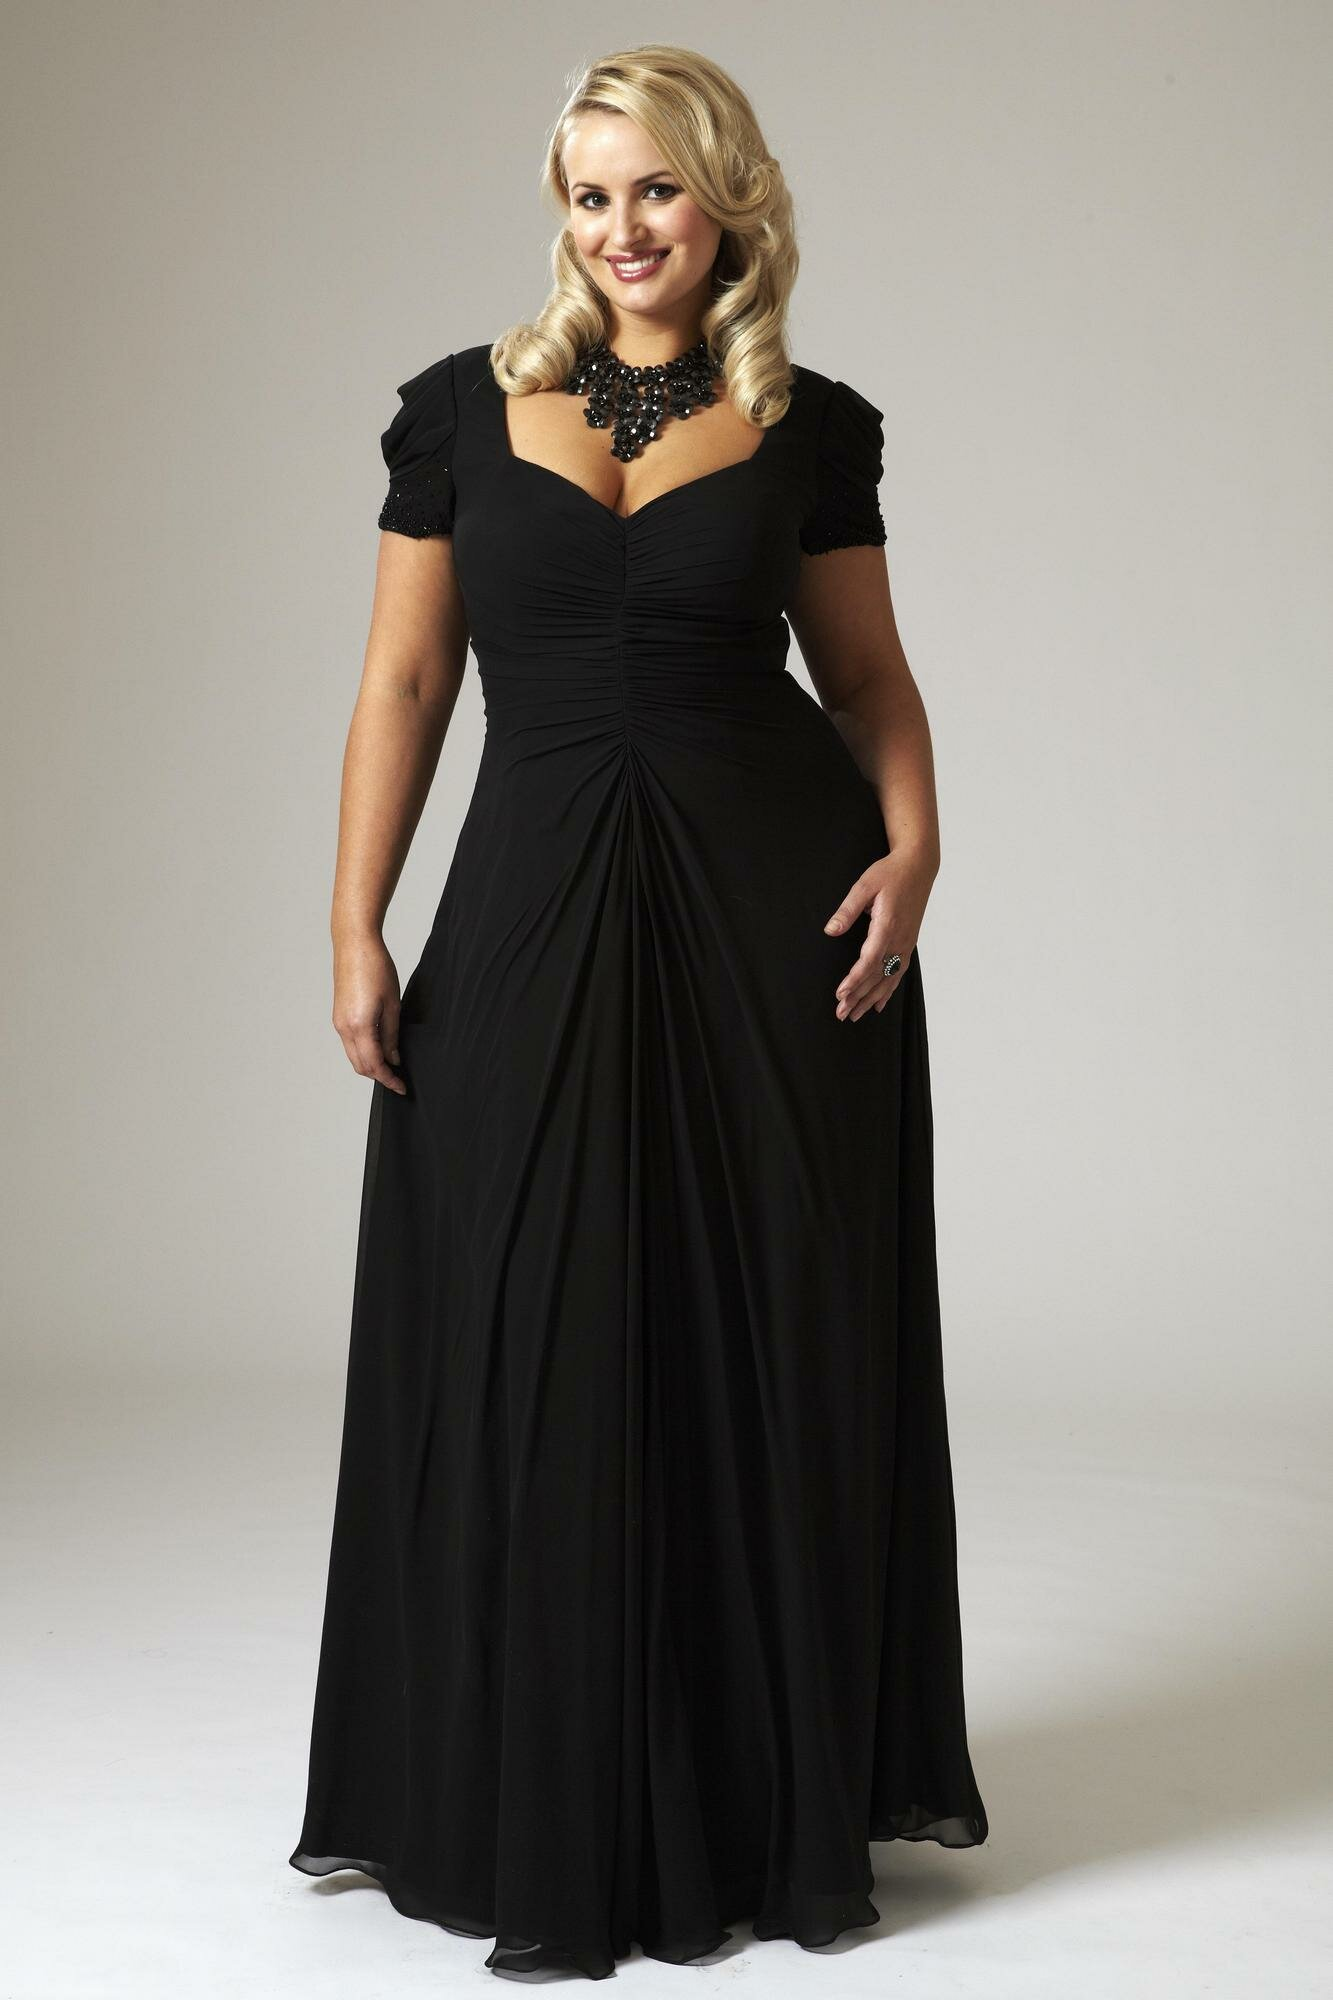 Plus Size Formal Gowns In Houston Texas - drive.cheapusedmotorhome.info